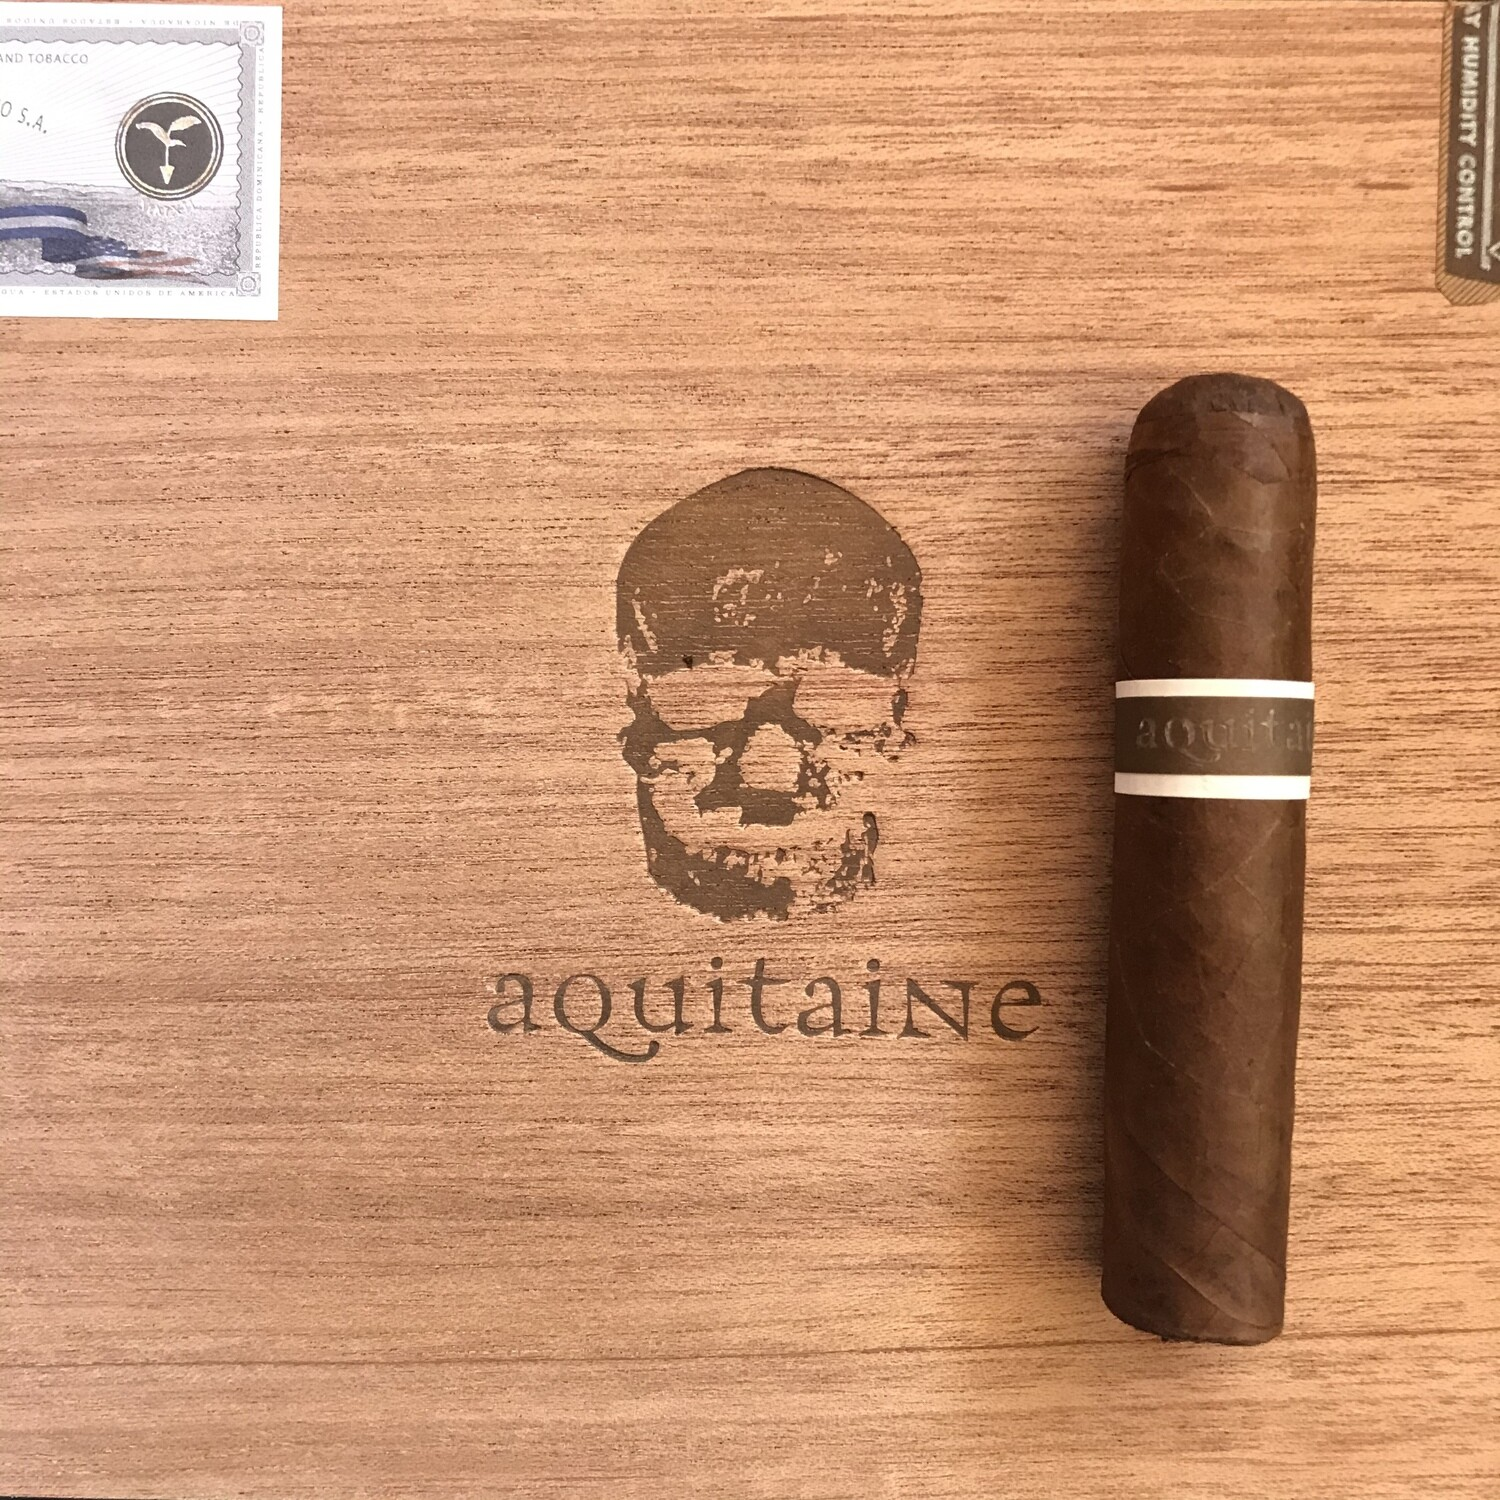 Knuckle Dragger 4x52 Petite Robusto, Aquitaine, 24's